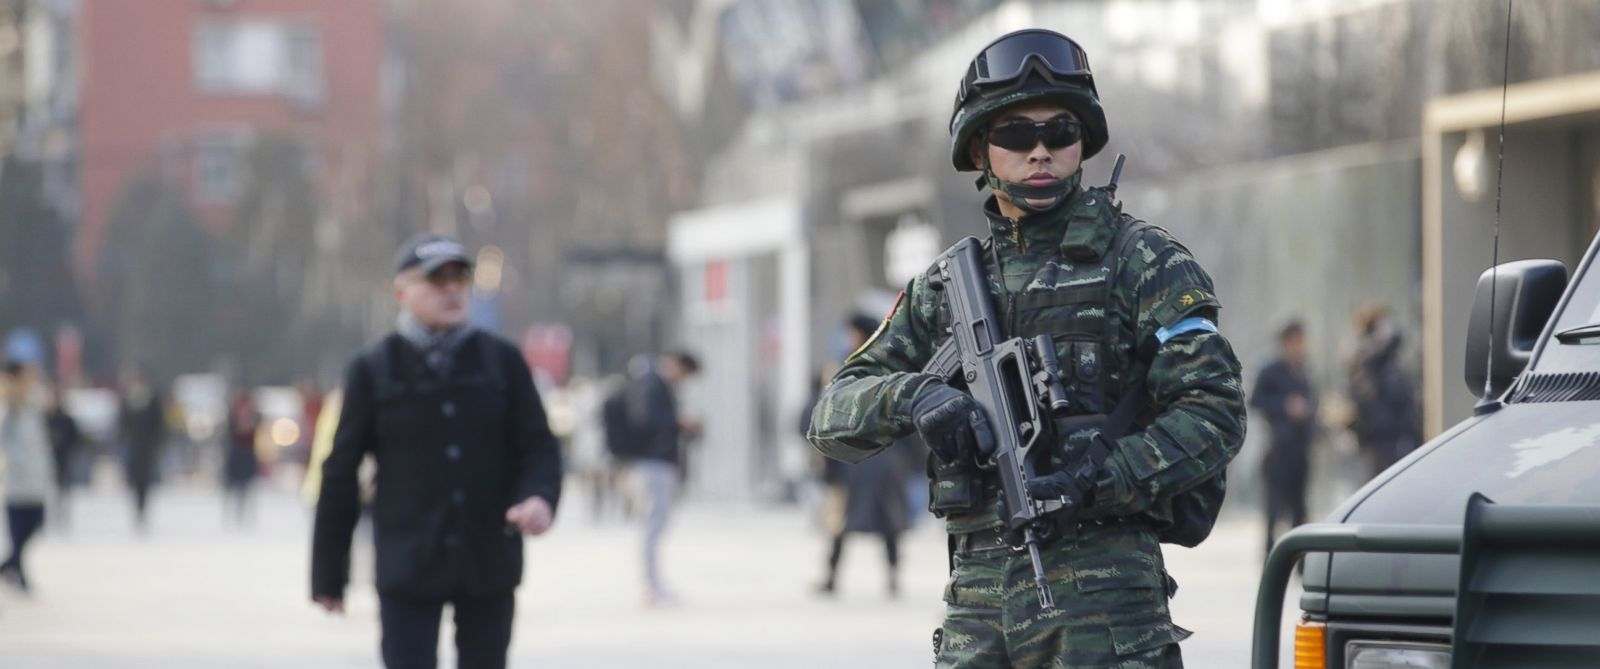 PHOTO: An armed policeman of the Snow Leopard Commando Unit stands guard near a police van at the Sanlitun area, a fashionable location for shopping and dining, in Beijing, Dec. 24, 2015.